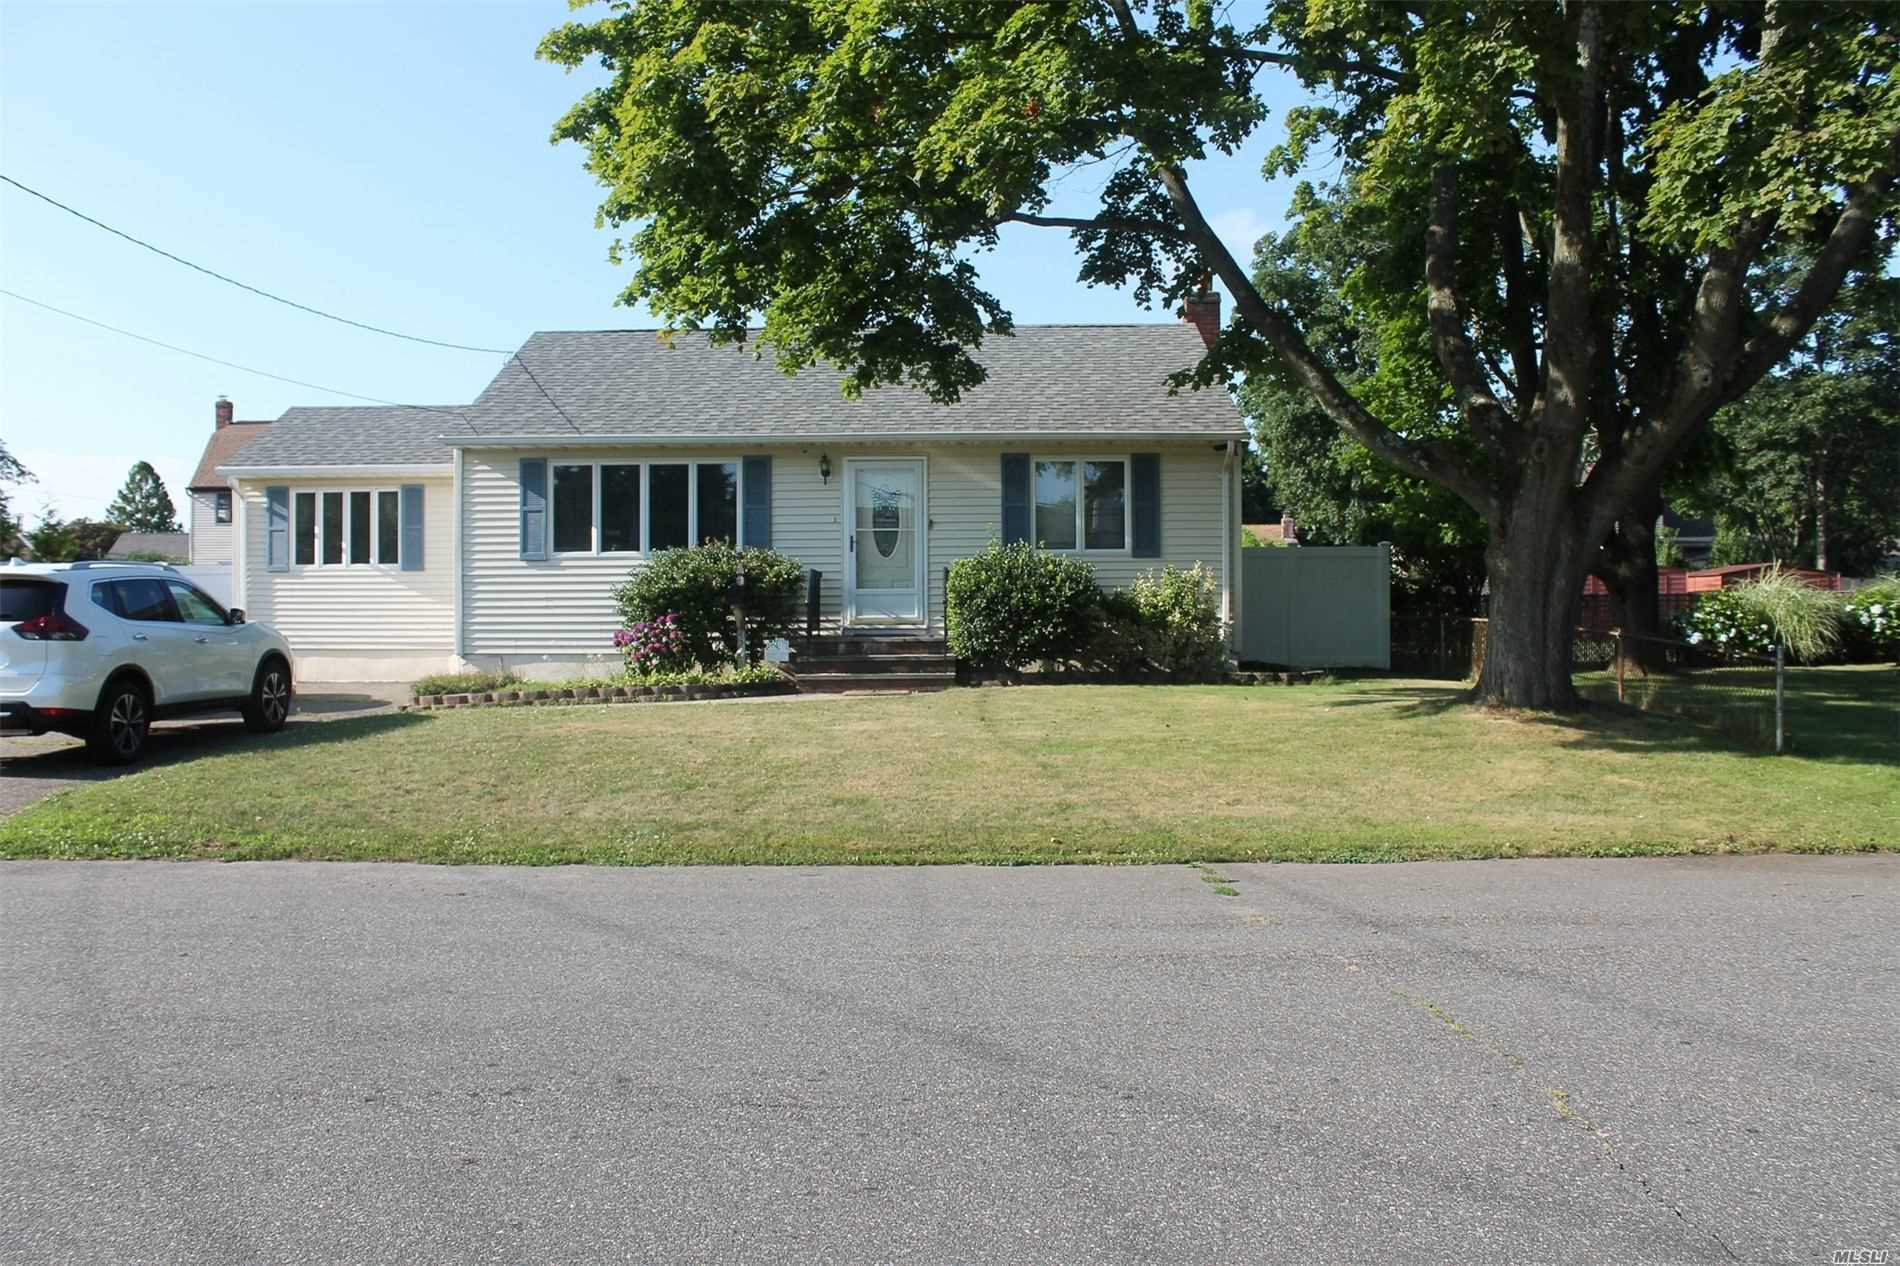 Lovely Renovated Expanded Ranch Home on a Dead End Block w/Living Rm, Large Eat-in-Kitchen w/Cherry Cabinets, Granite Countertops & SS Appliances, Sunken Den w/French Door to Backyard, 3 Bedrooms & Full Bath. Pull-Down Stairs to Attic. Full Finished Basement w/Full Bath & Laundry & Boiler Area. Fenced 75' x 100' Parcel w/Above Ground Pool. Architectural Roof, Andersen Windows, Central Air Conditioning, Oak Floors, & Low Taxes. Replaced in Last 2 Yrs: Fence, CAC, Deck, Pool Liner and Alarm.